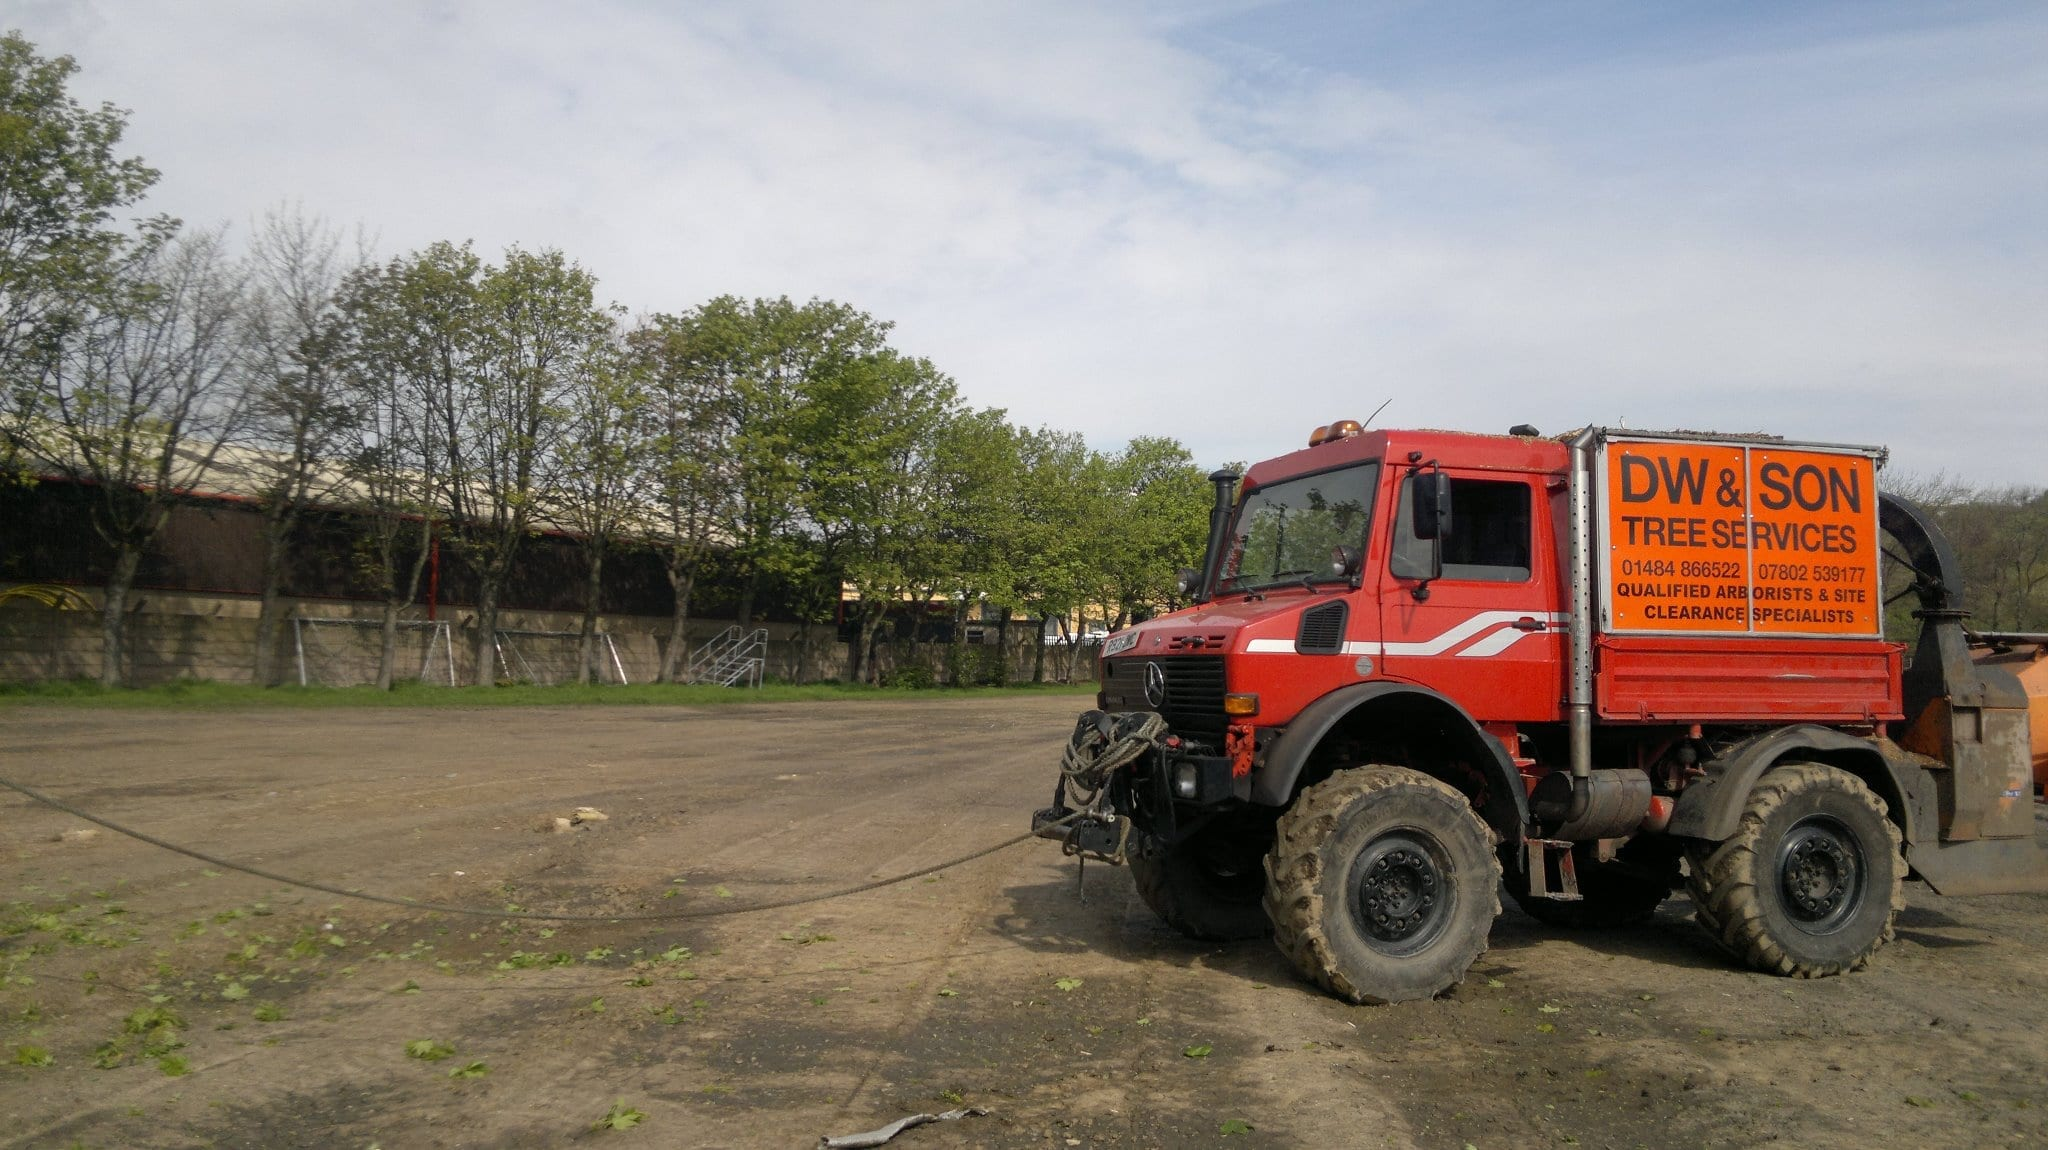 Tree surgeons Unimog with TPO powered wood chipper for chipping trees